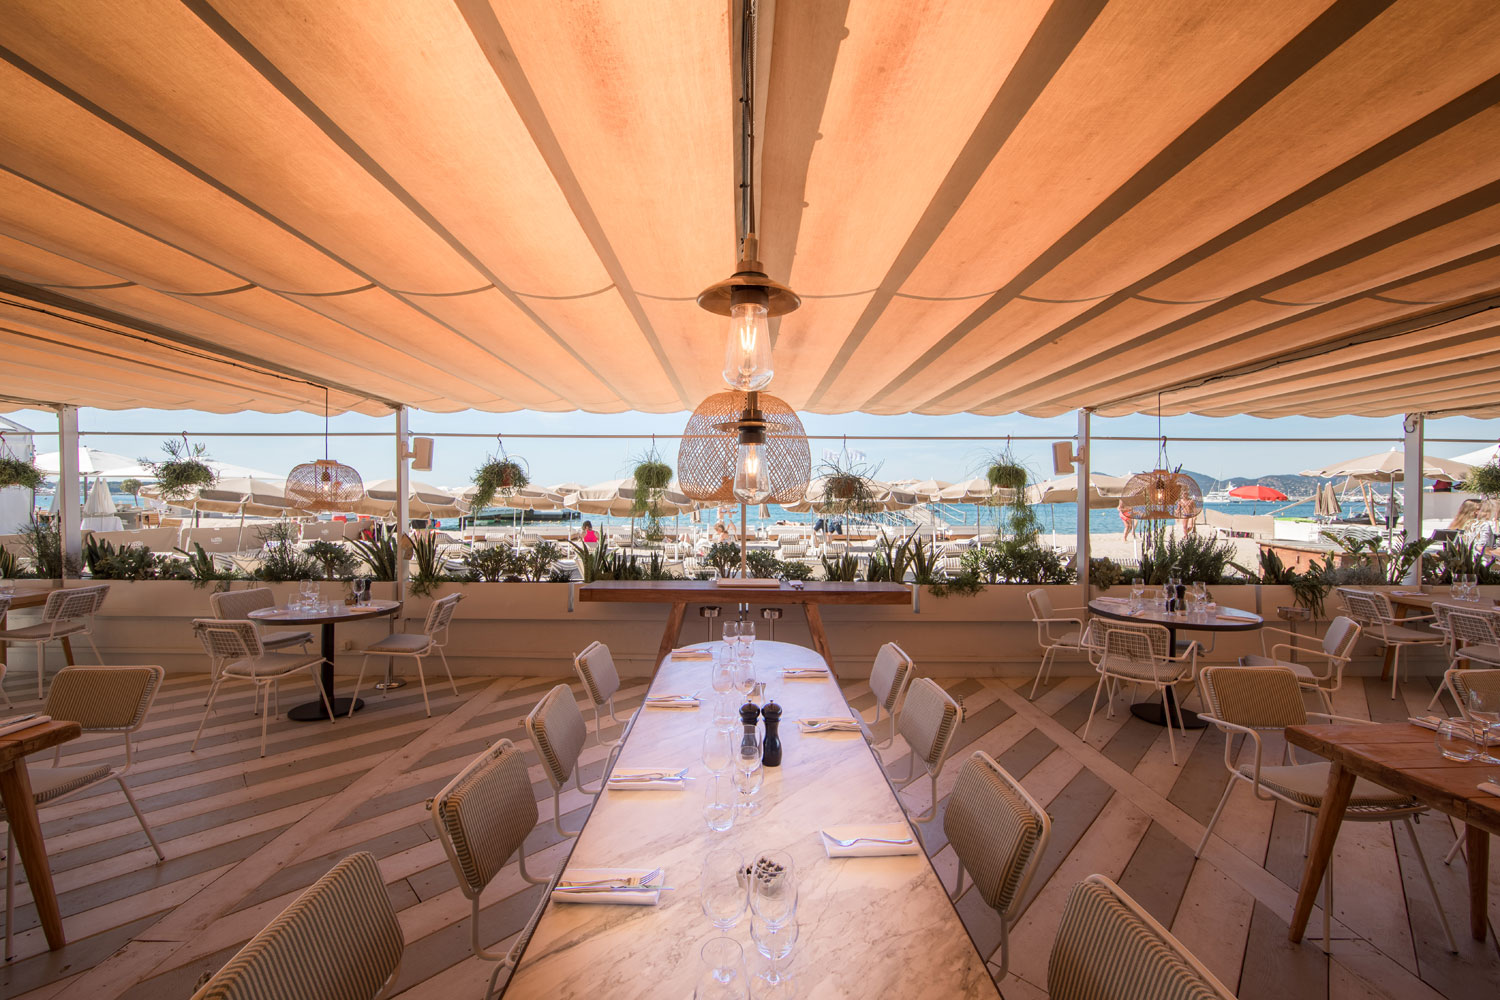 This Cannes beachfront hotel features our vintage-style outdoor lights